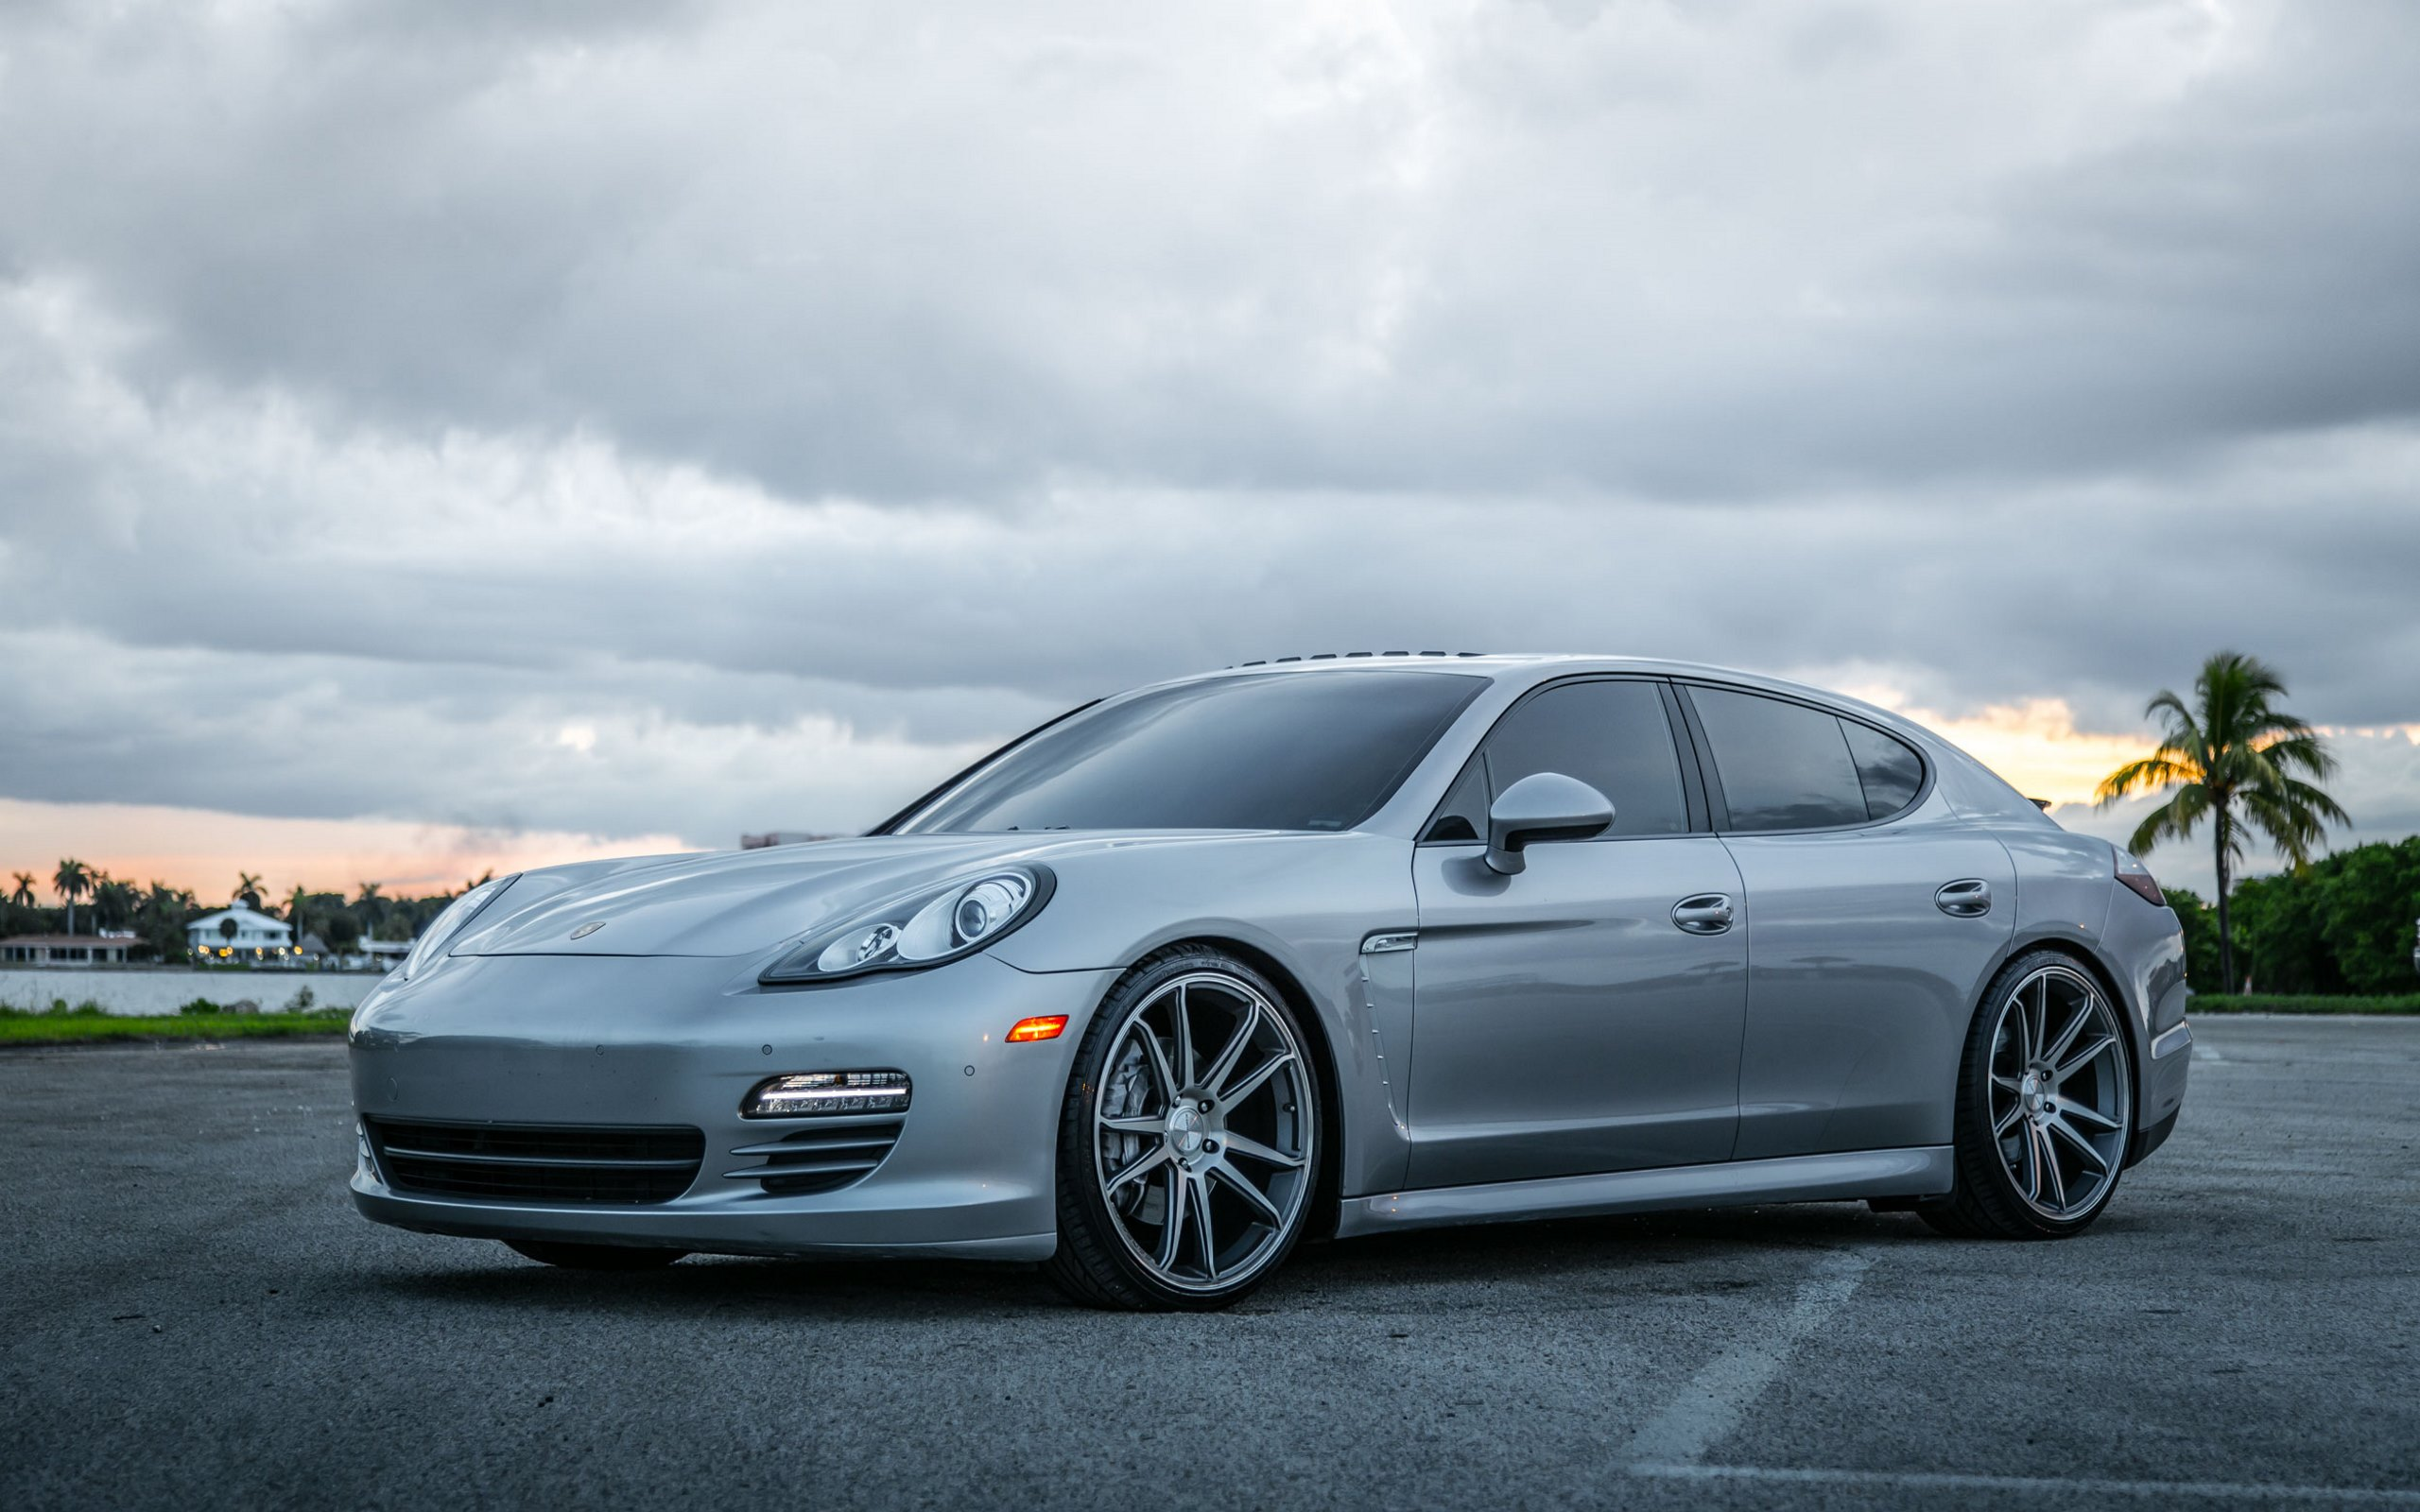 Porsche Panamera 4 Wallpapers Hd Prices Information